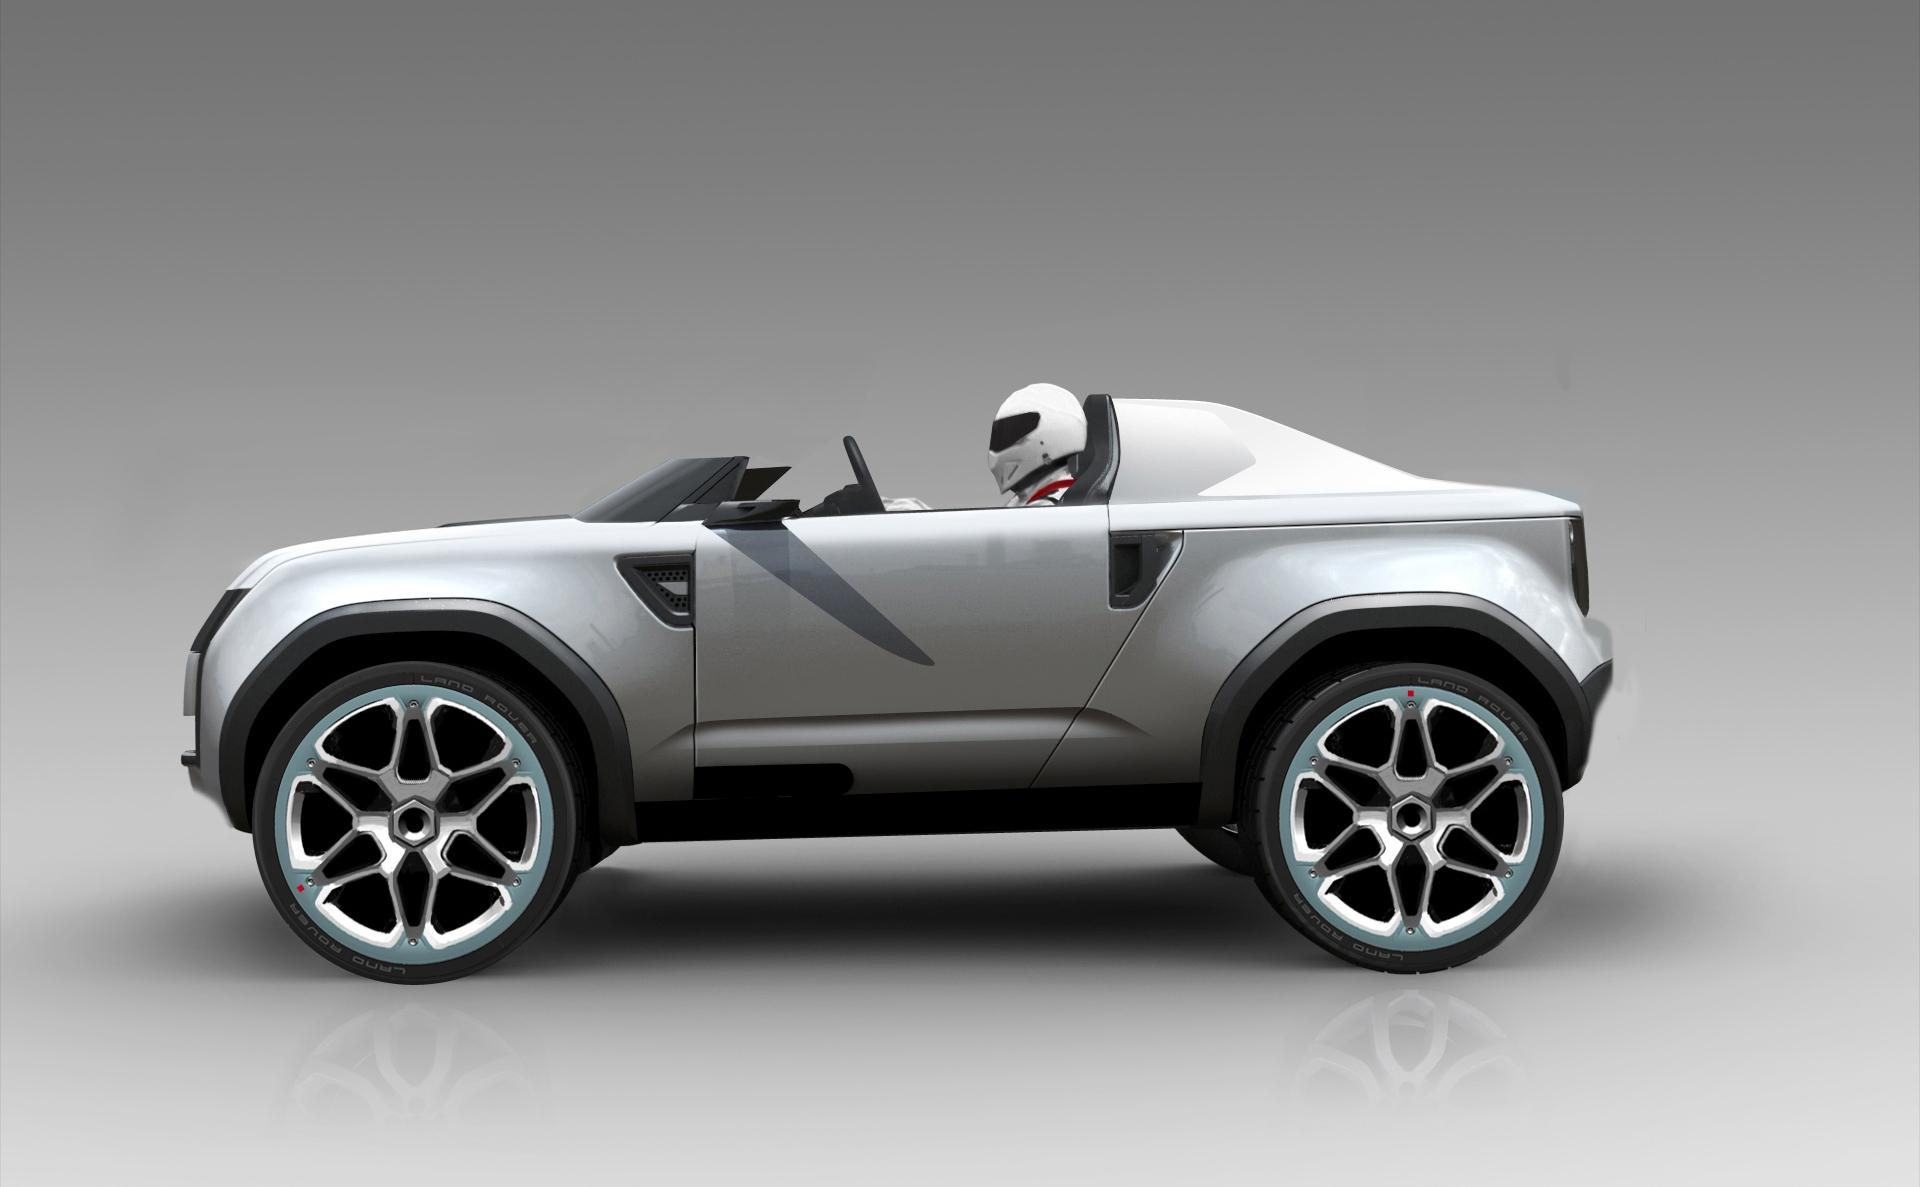 2012 Land Rover Dc100 Sport Concept News And Information Research And History